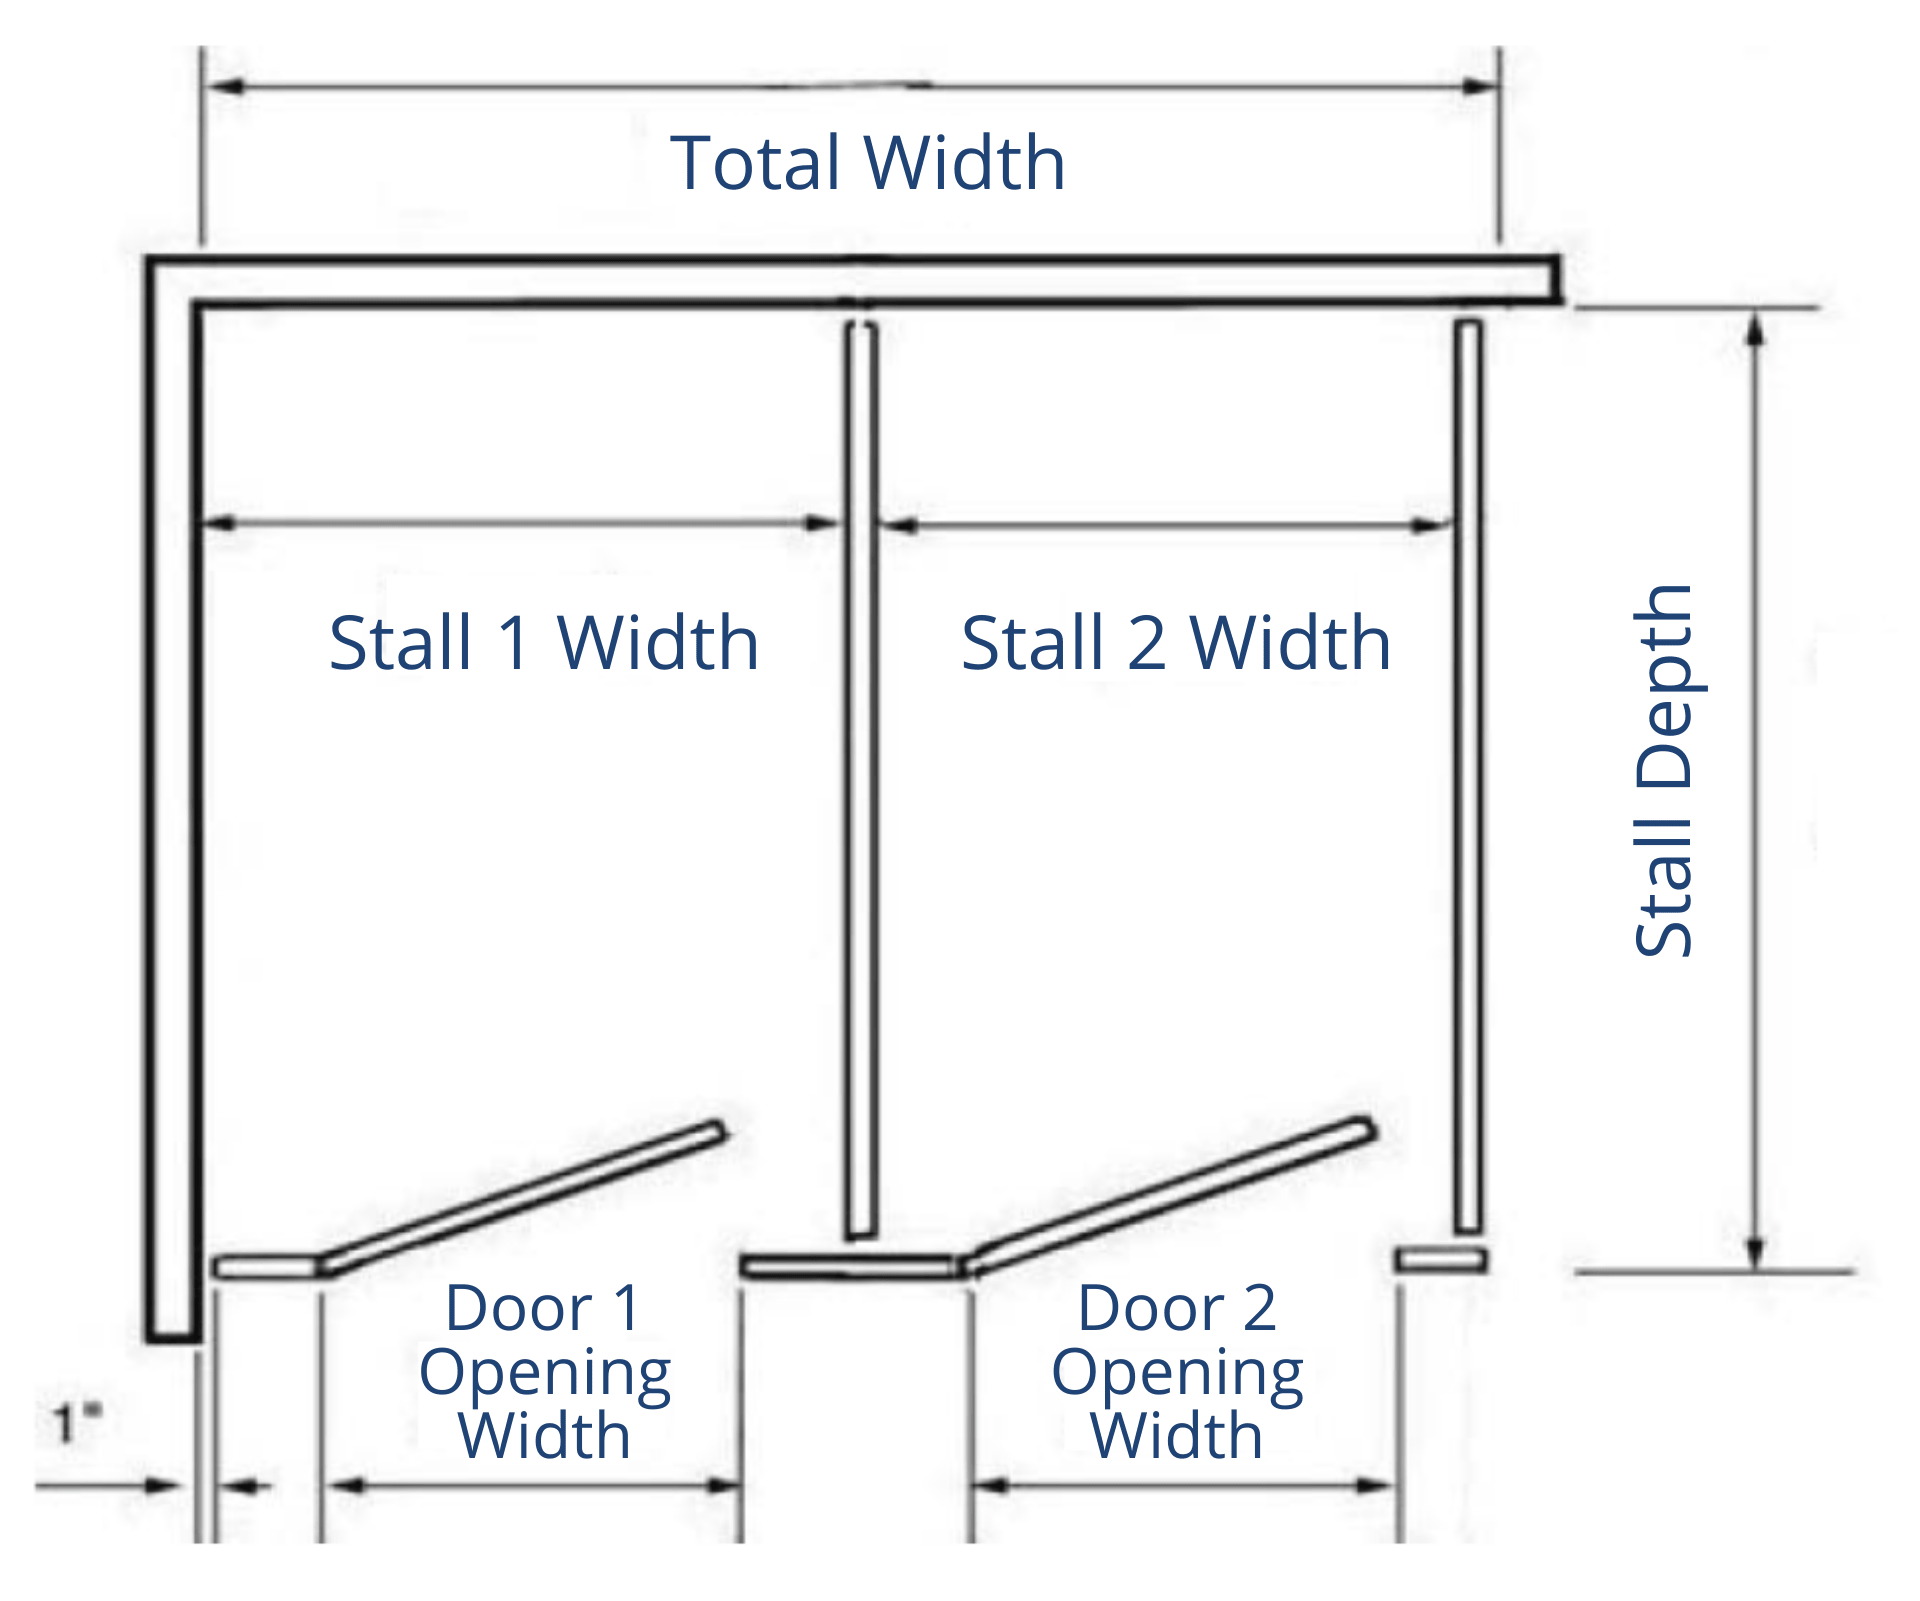 2 Stall in a corner Diagram